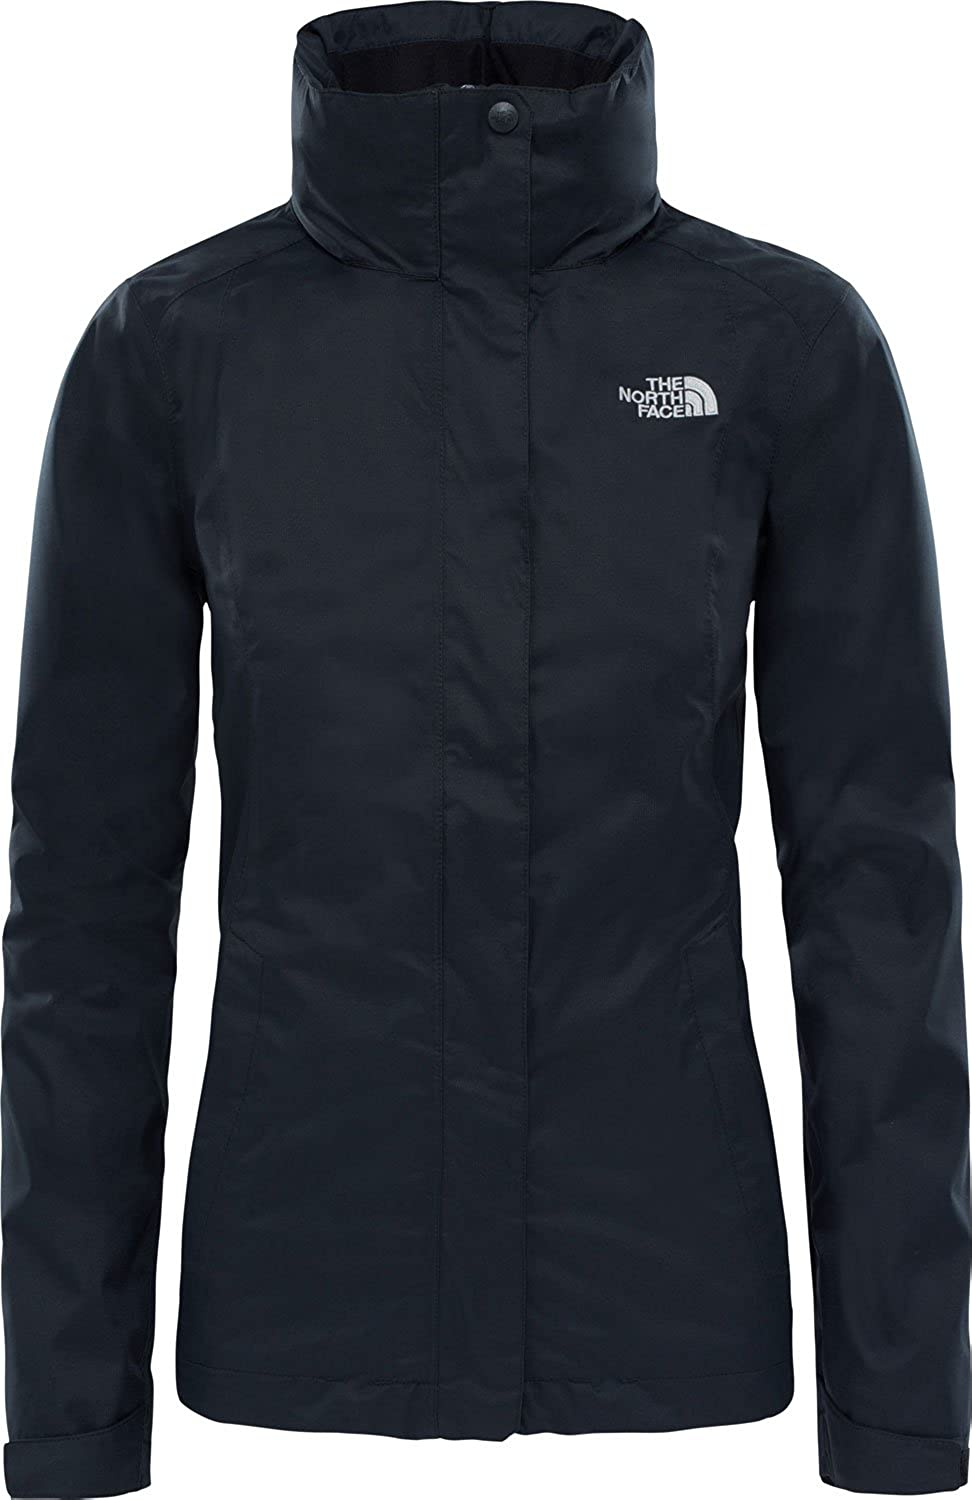 The North Face Evolve T0CG56, Giacca 3 in 1 Donna